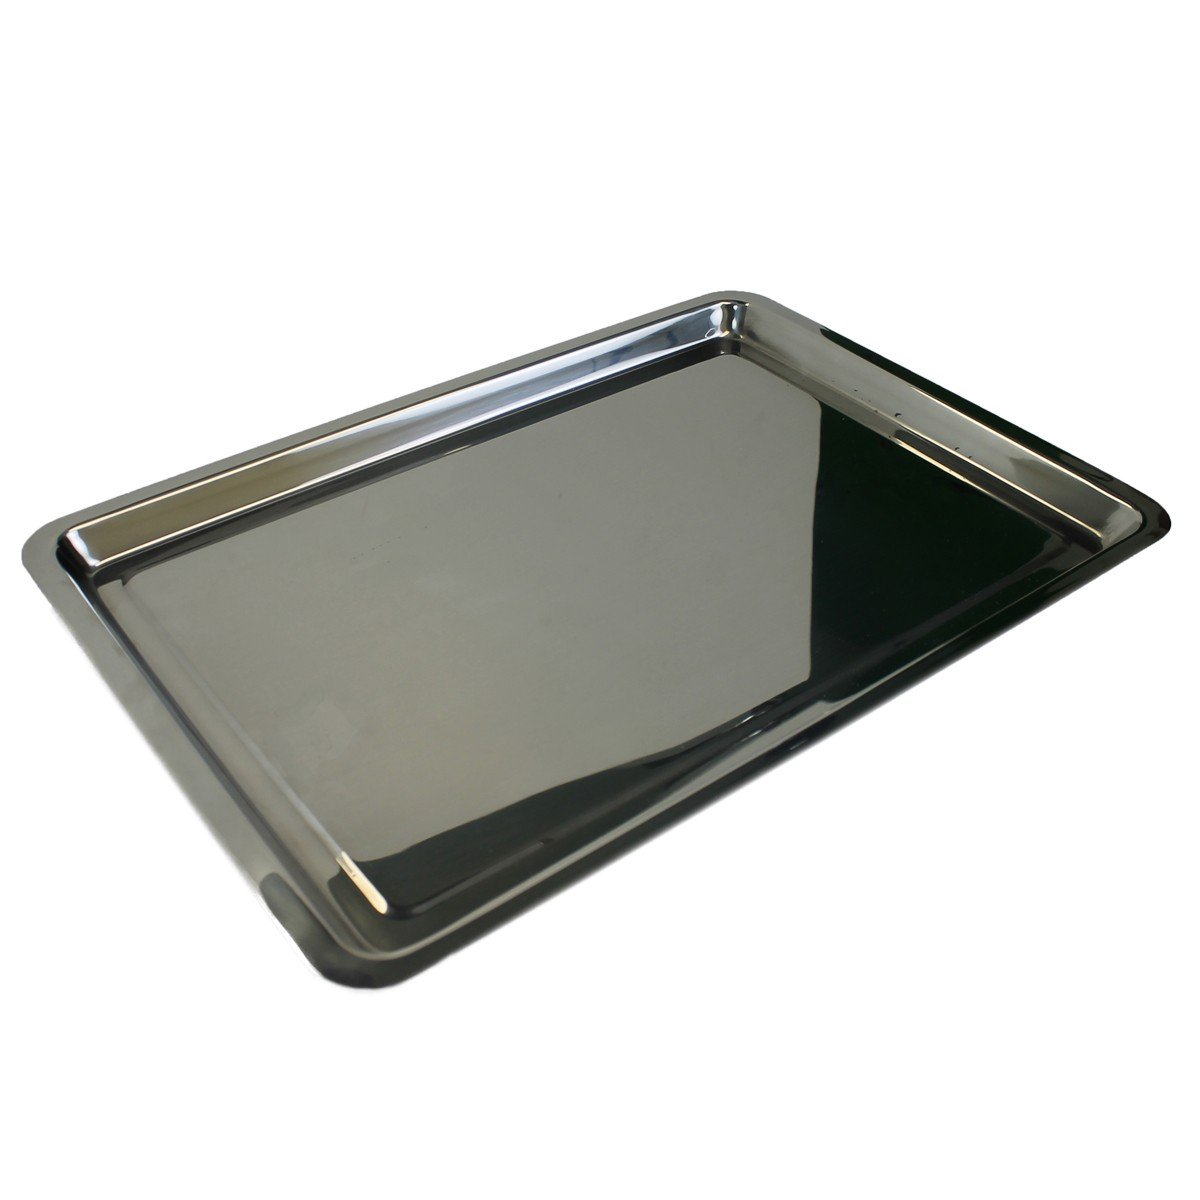 Hamilton Beach Stainless Steel Jelly Roll Pan 15.5'' X 10.5''